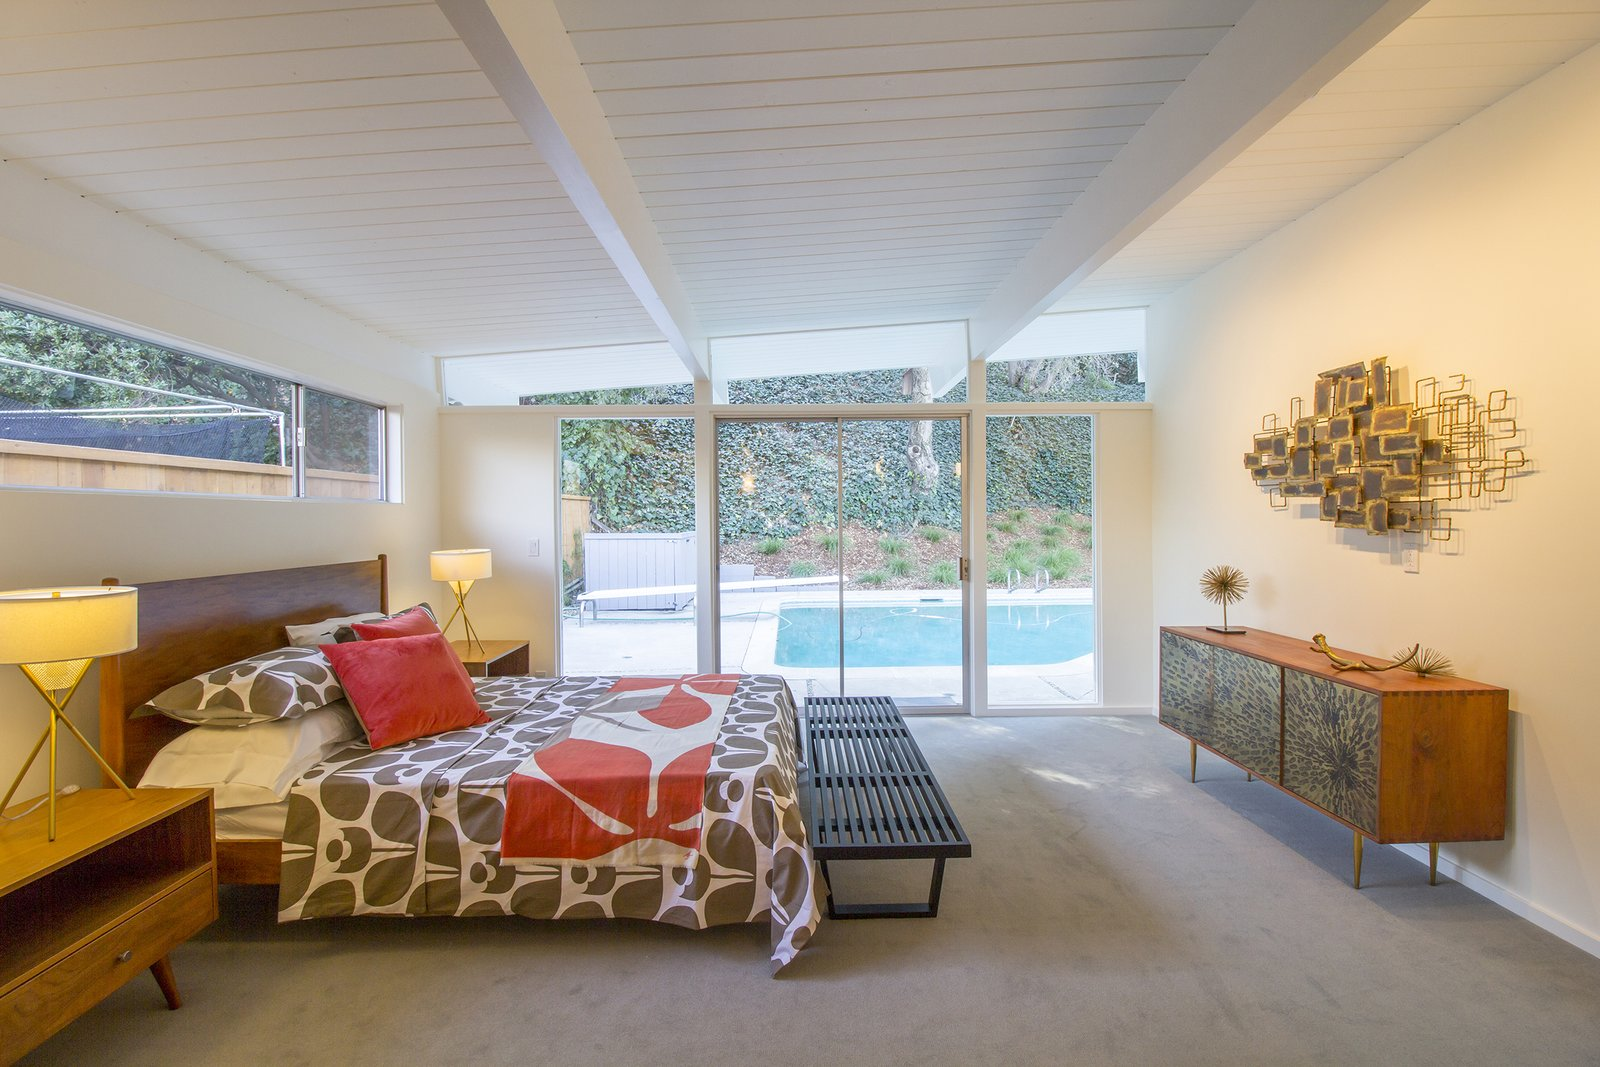 Bedroom, Table, Bench, Bunks, Lamps, Bed, Carpet, Storage, and Night Stands The owners can access the pool in the backyard via sliding doors in the master bedroom.  Bedroom Carpet Storage Night Stands Table Photos from A Meticulously Updated Midcentury in L.A. Asks $1.49M